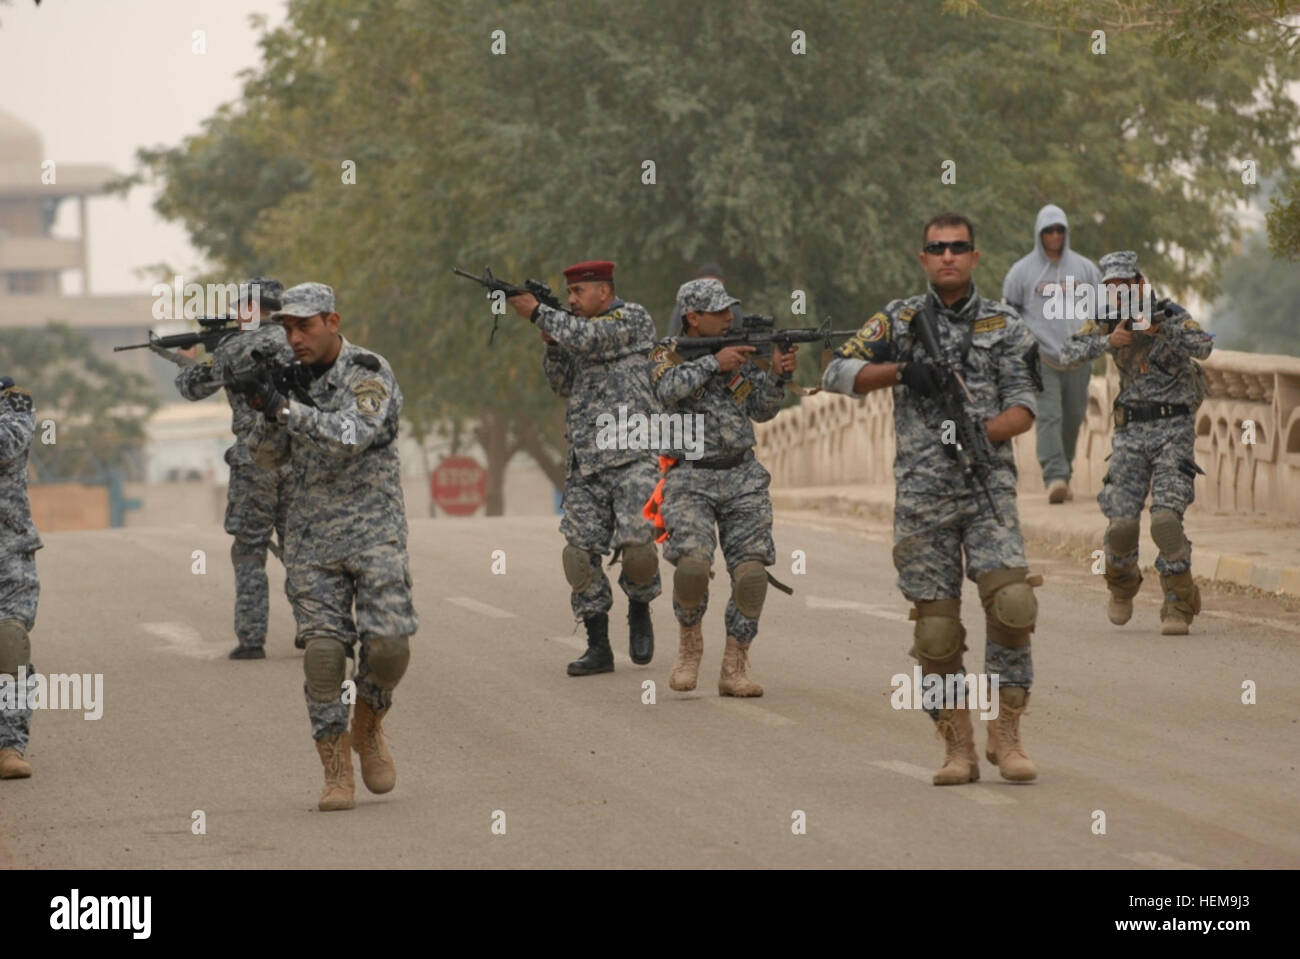 Policemen with the Iraqi Federal Police Explosive Ordnance Disposal Directorates conduct a foot patrol lane during - Stock Image